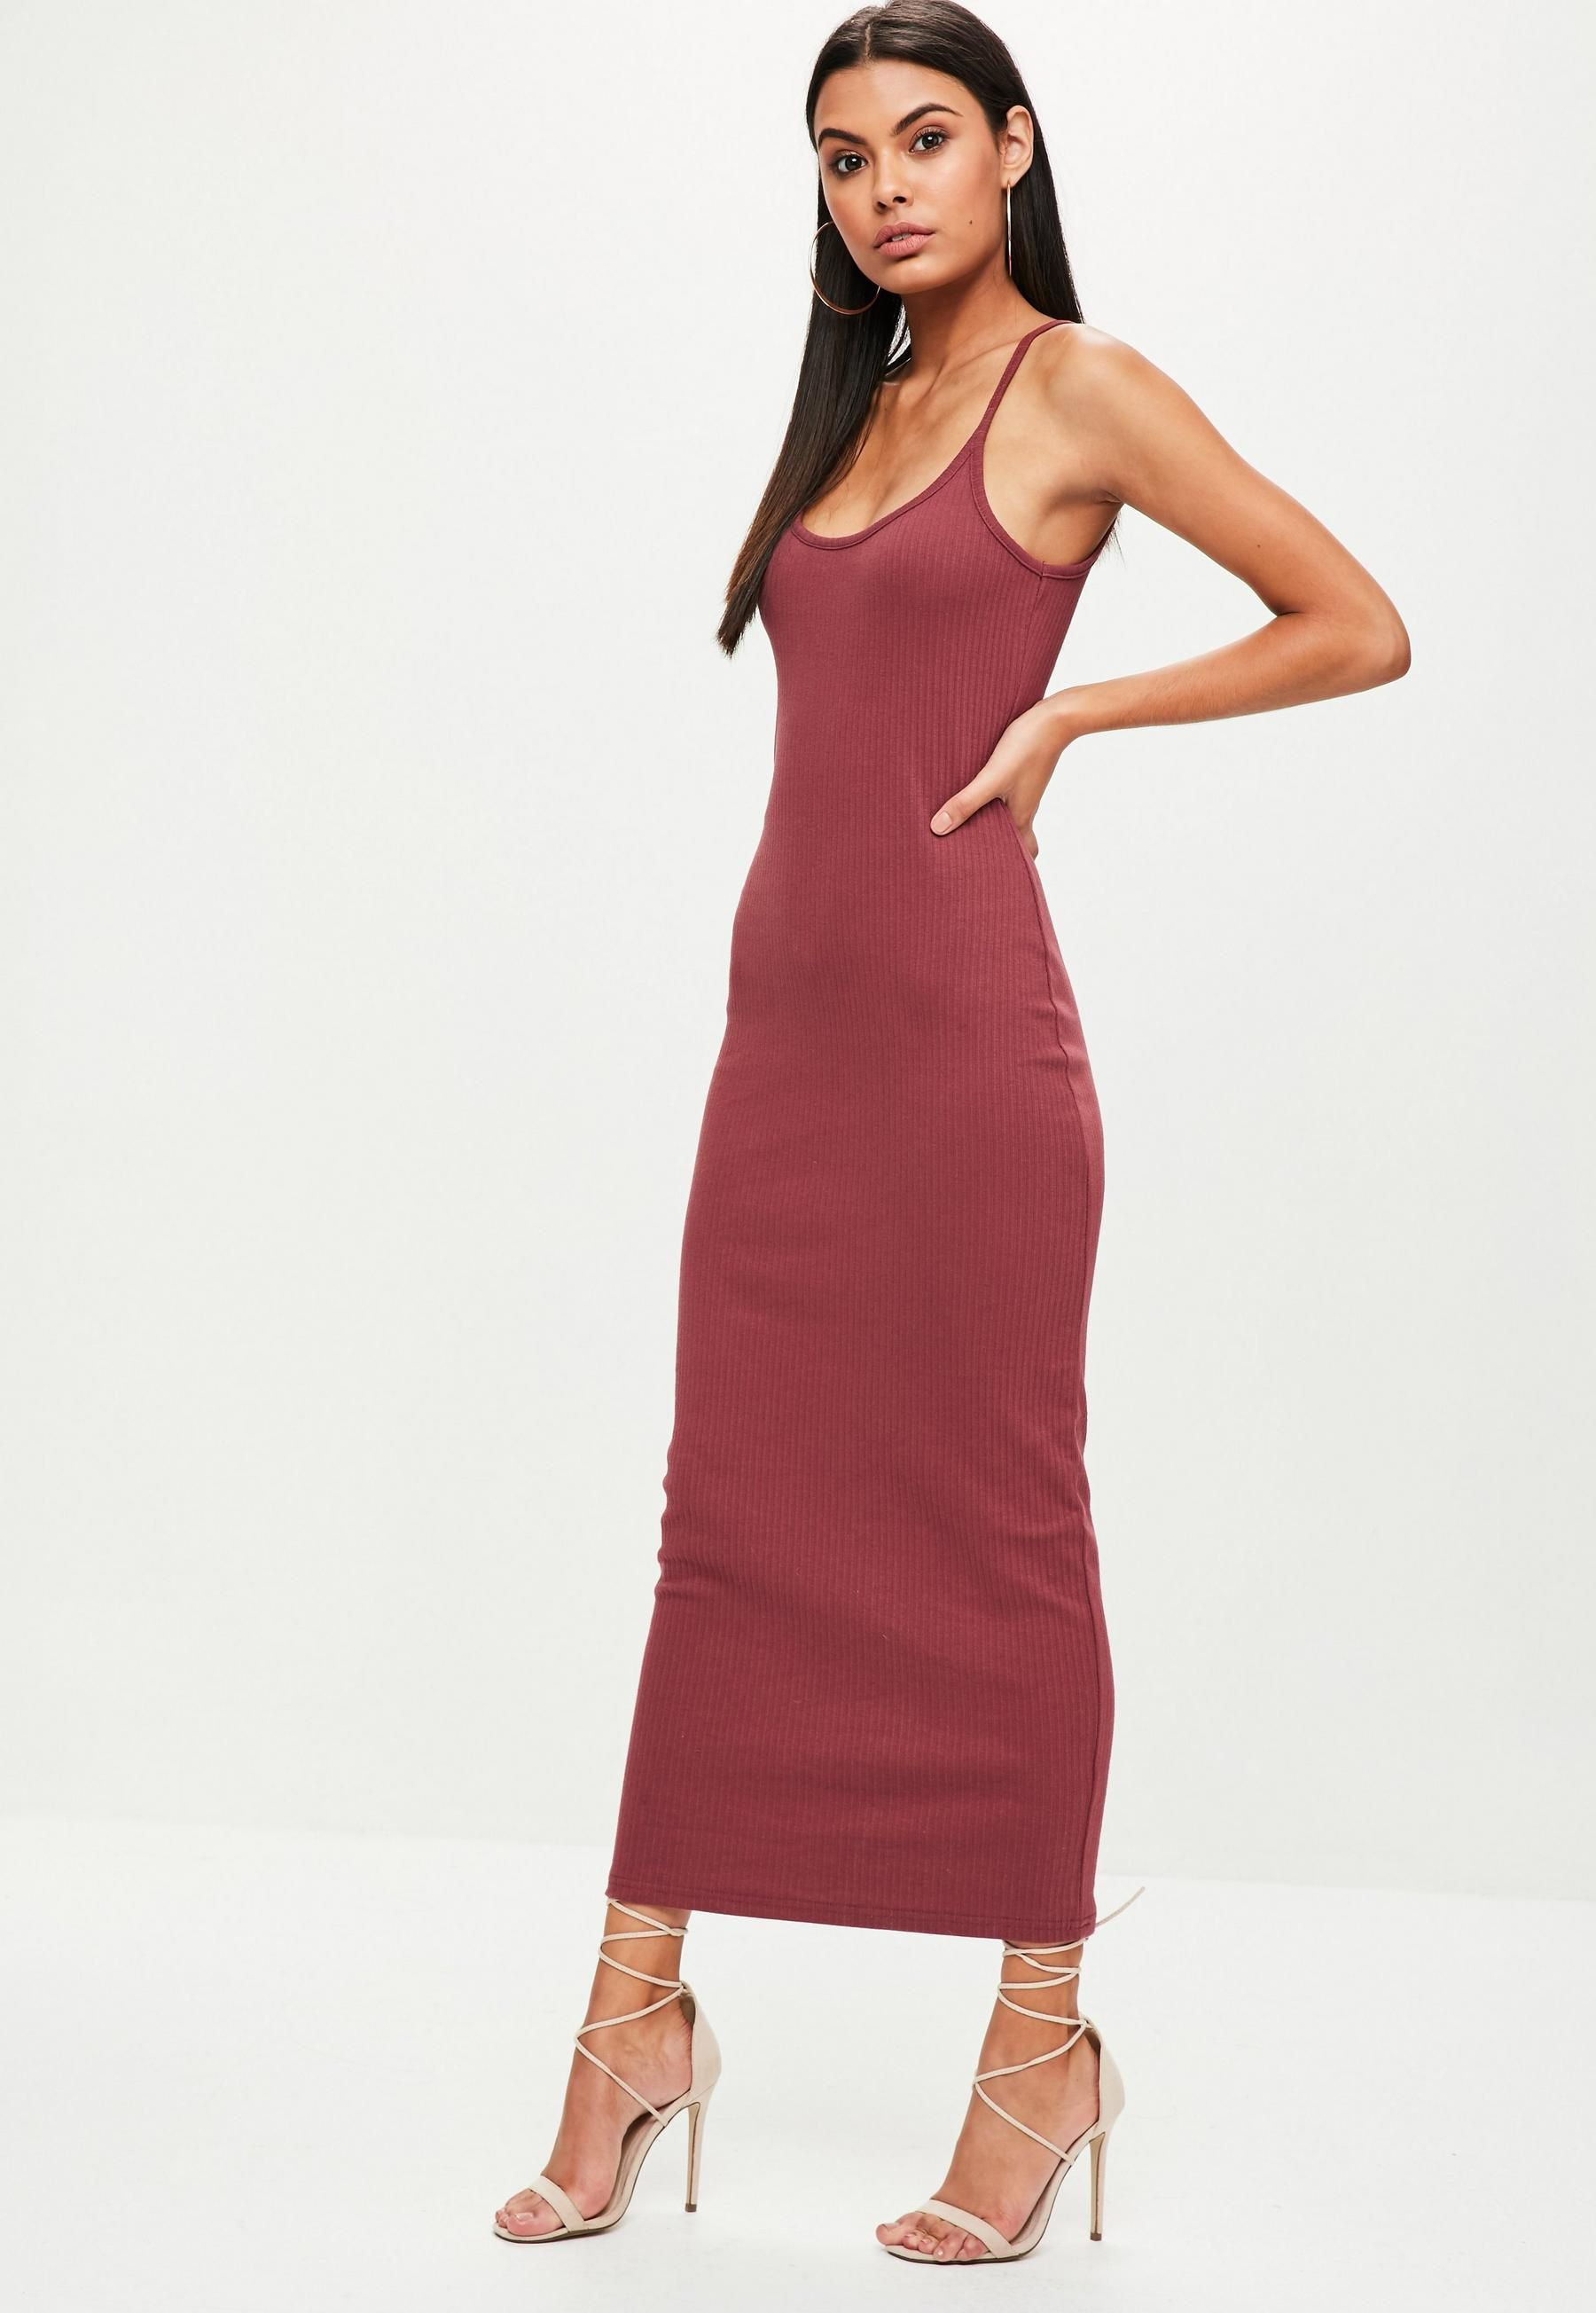 96f3c969ced9 Missguided Burgundy Ribbed Strappy Midi Dress in 2019